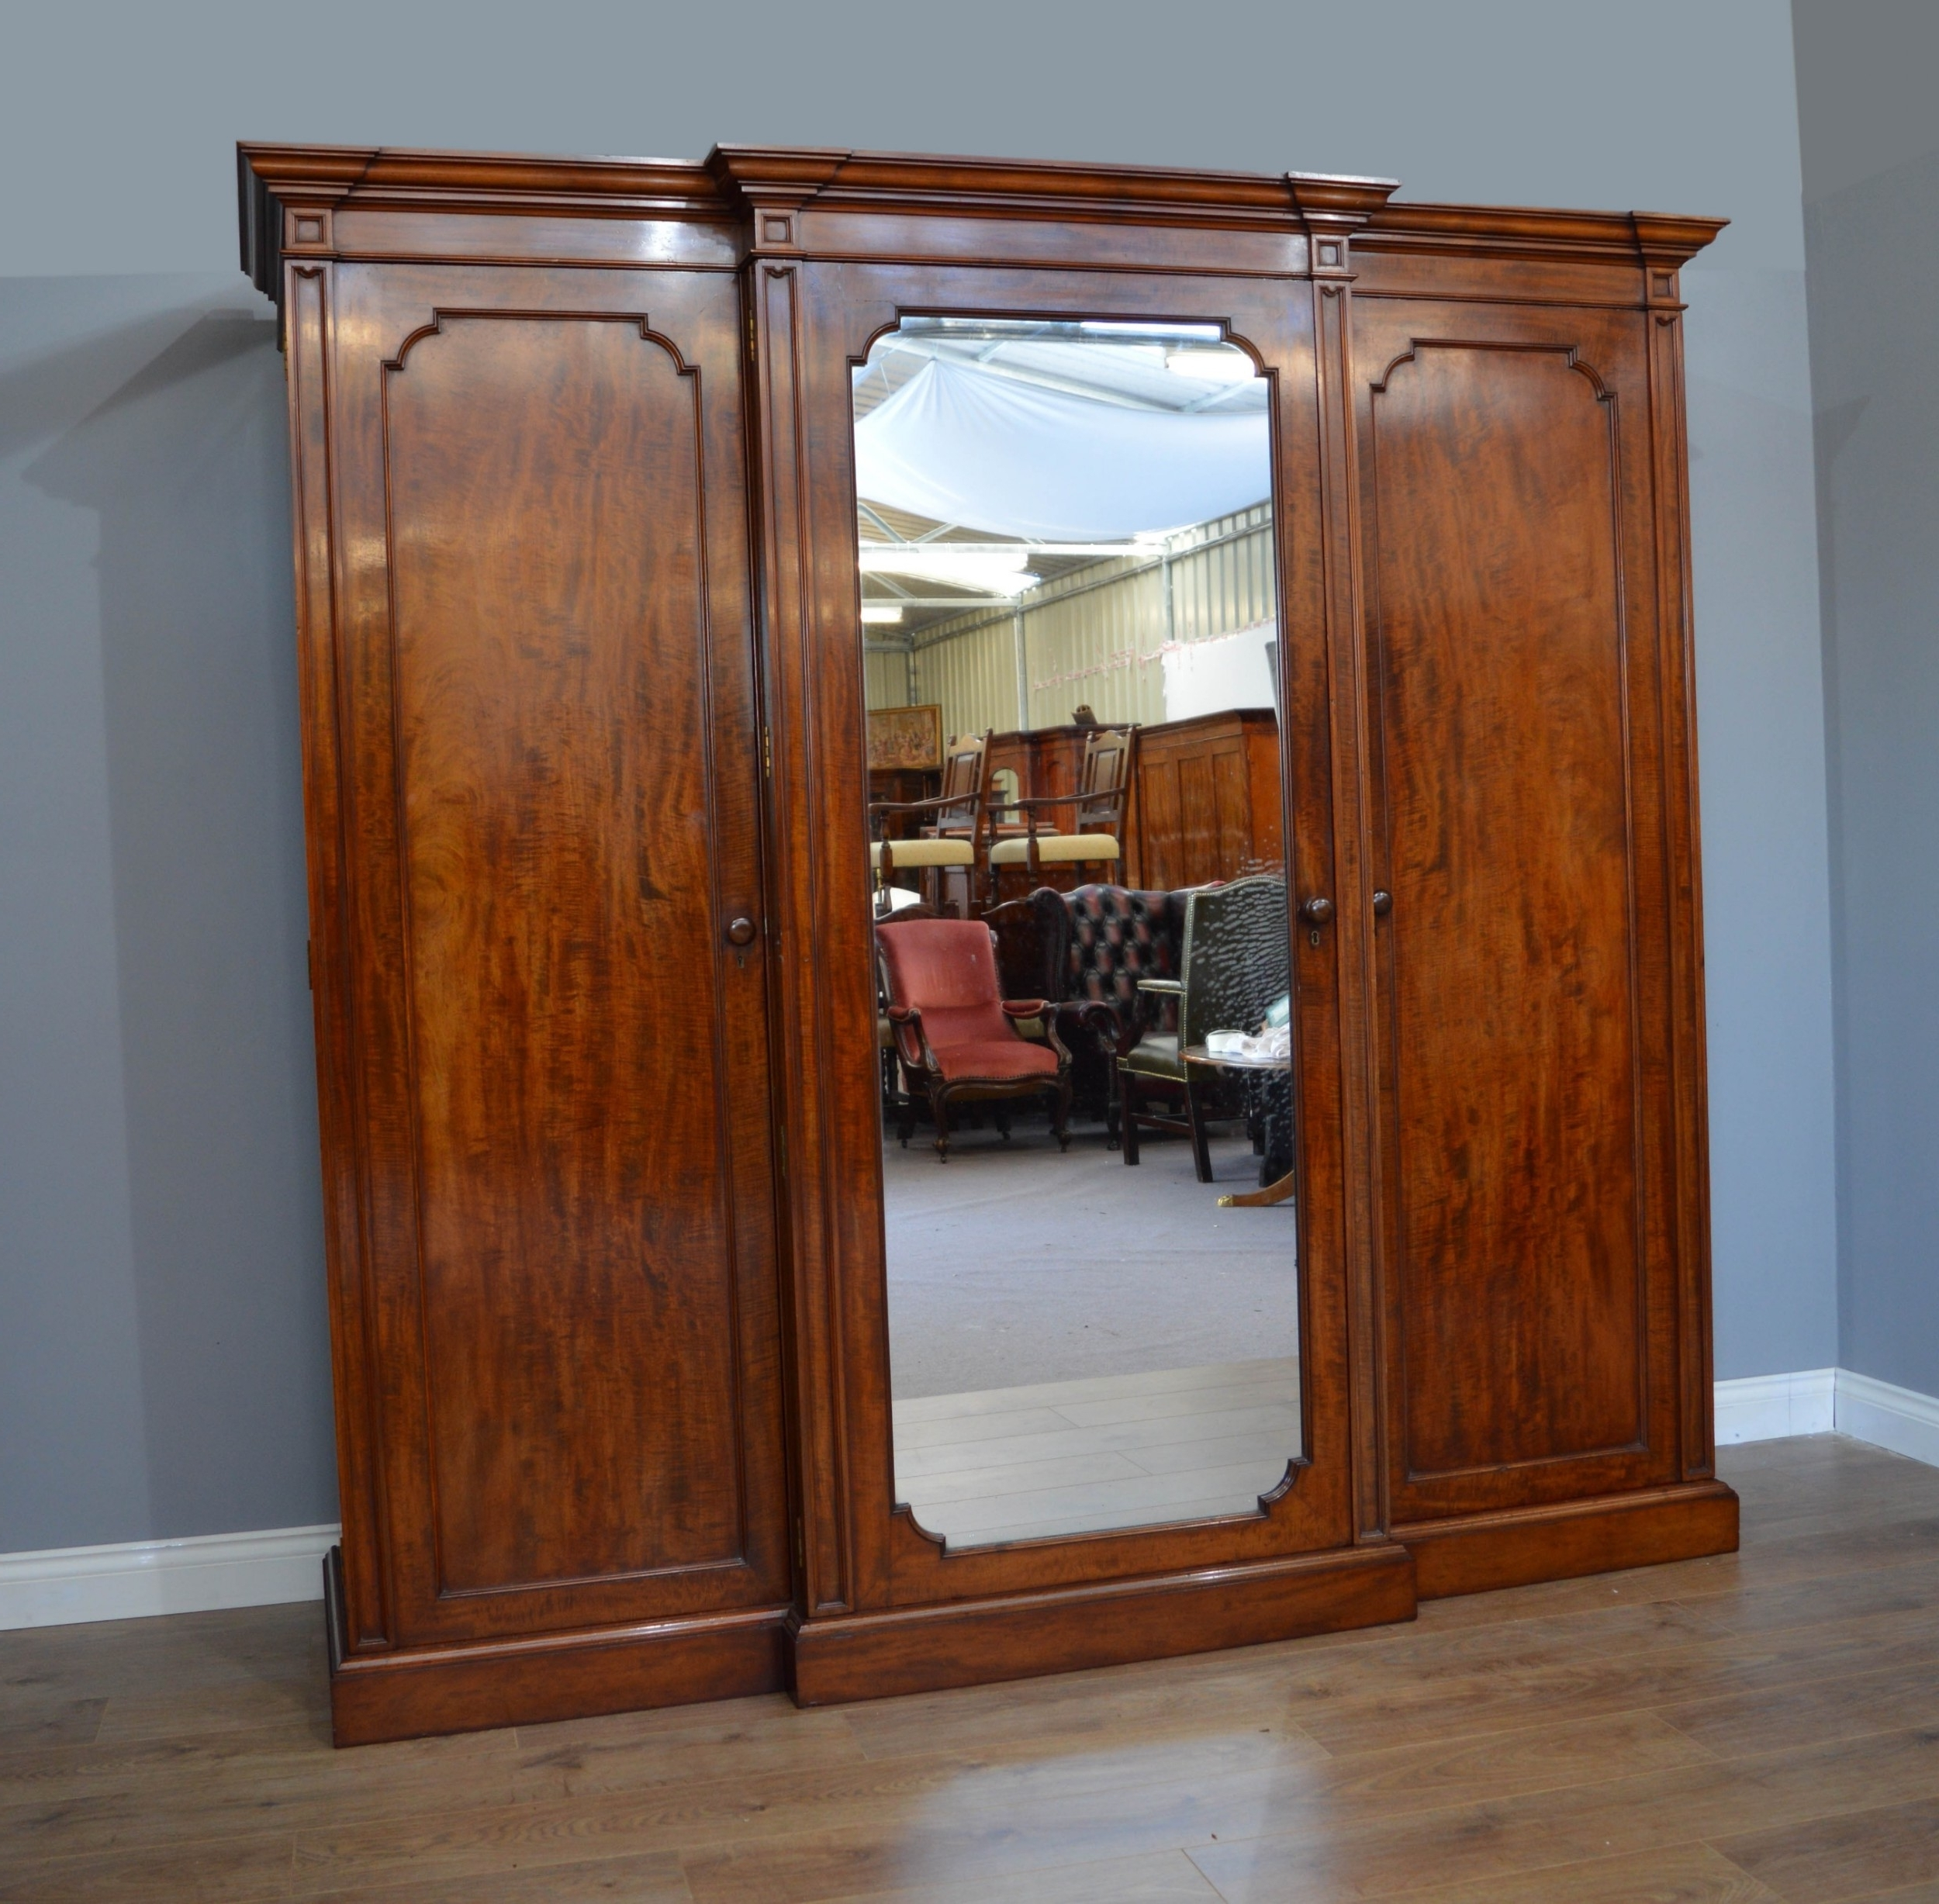 Gillow Antique Victorian Mahogany Breakfront Triple Wardrobe With Well Known Victorian Mahogany Breakfront Wardrobes (View 9 of 15)